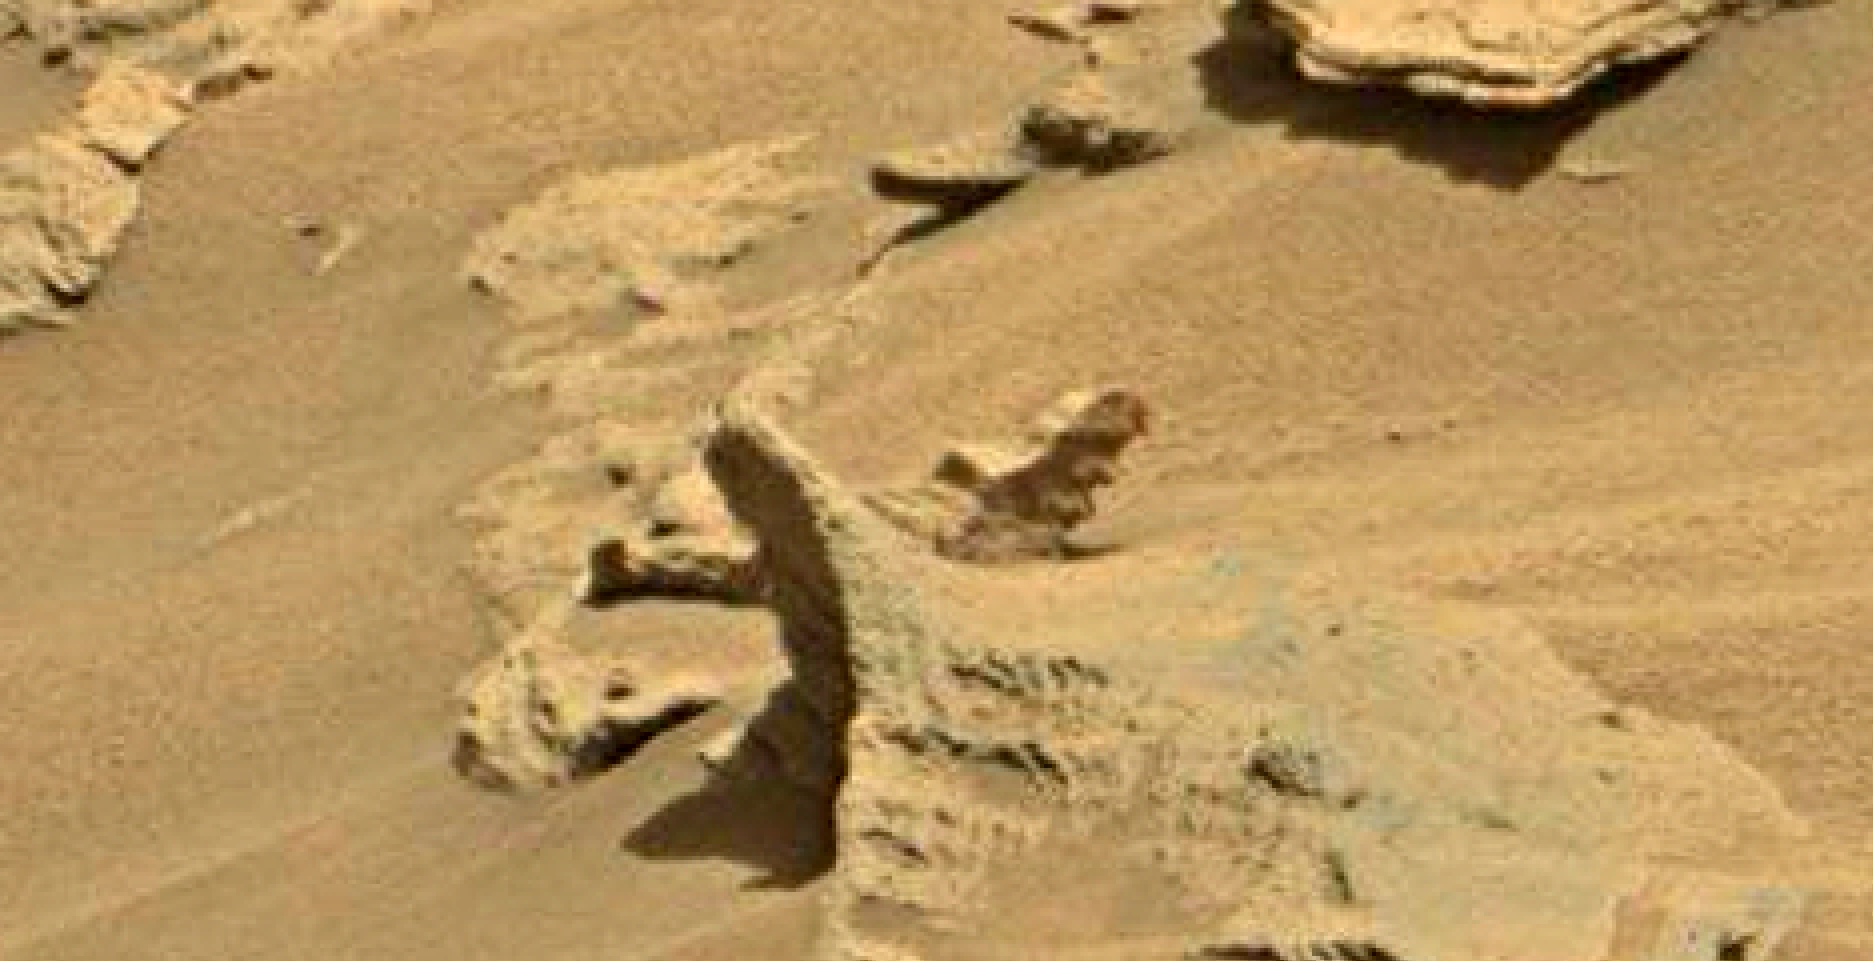 mars sol 1346 anomaly-artifacts 11 was life on mars